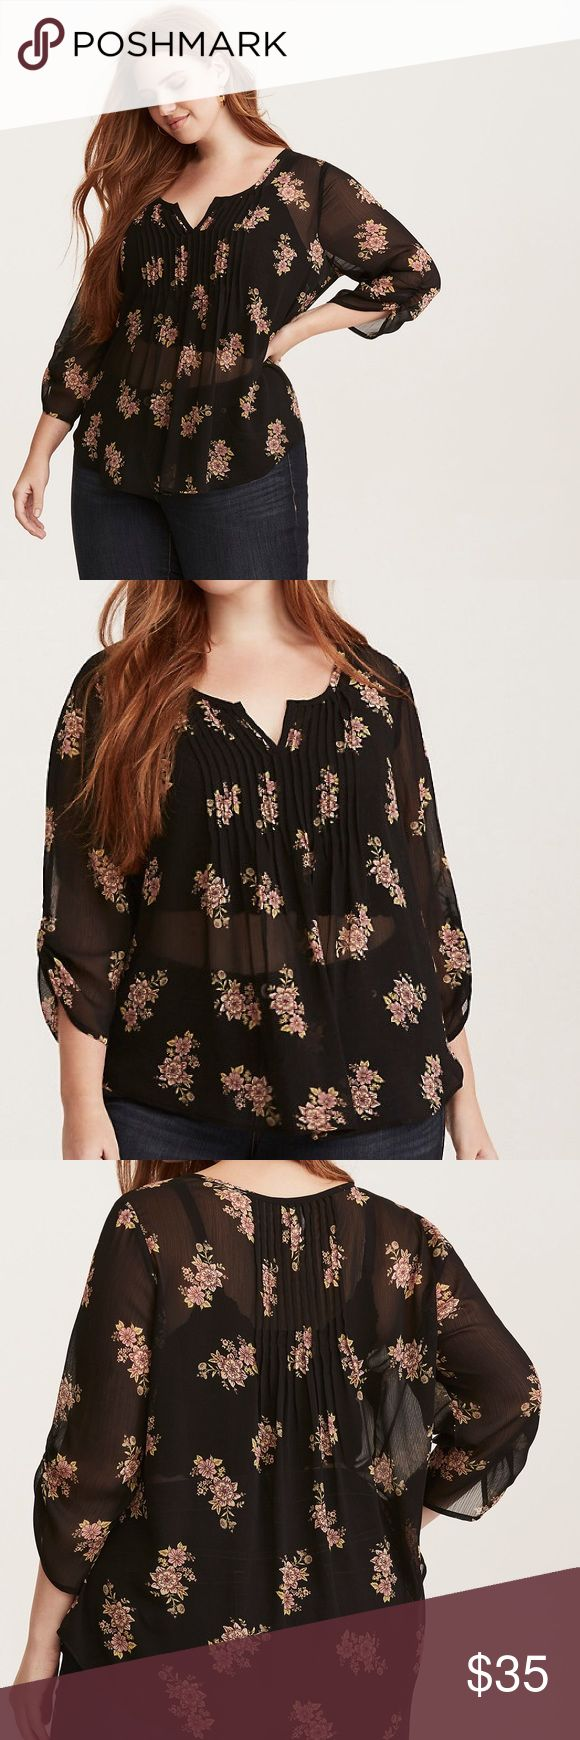 """Torrid Floral Print Chiffon Pintuck Top """"Love the skin you're in? Treat it right with this top; you're guaranteed to catch some air. The sheer black chiffon provides its own air supply with a swingy hem and a pleated collar. A floral print lends a girly touch to the float on style. Ruched sleeves help define. Approx measures 29 1/4"""" from shoulder. Polyester."""" New with tags, size 2X. torrid Tops"""